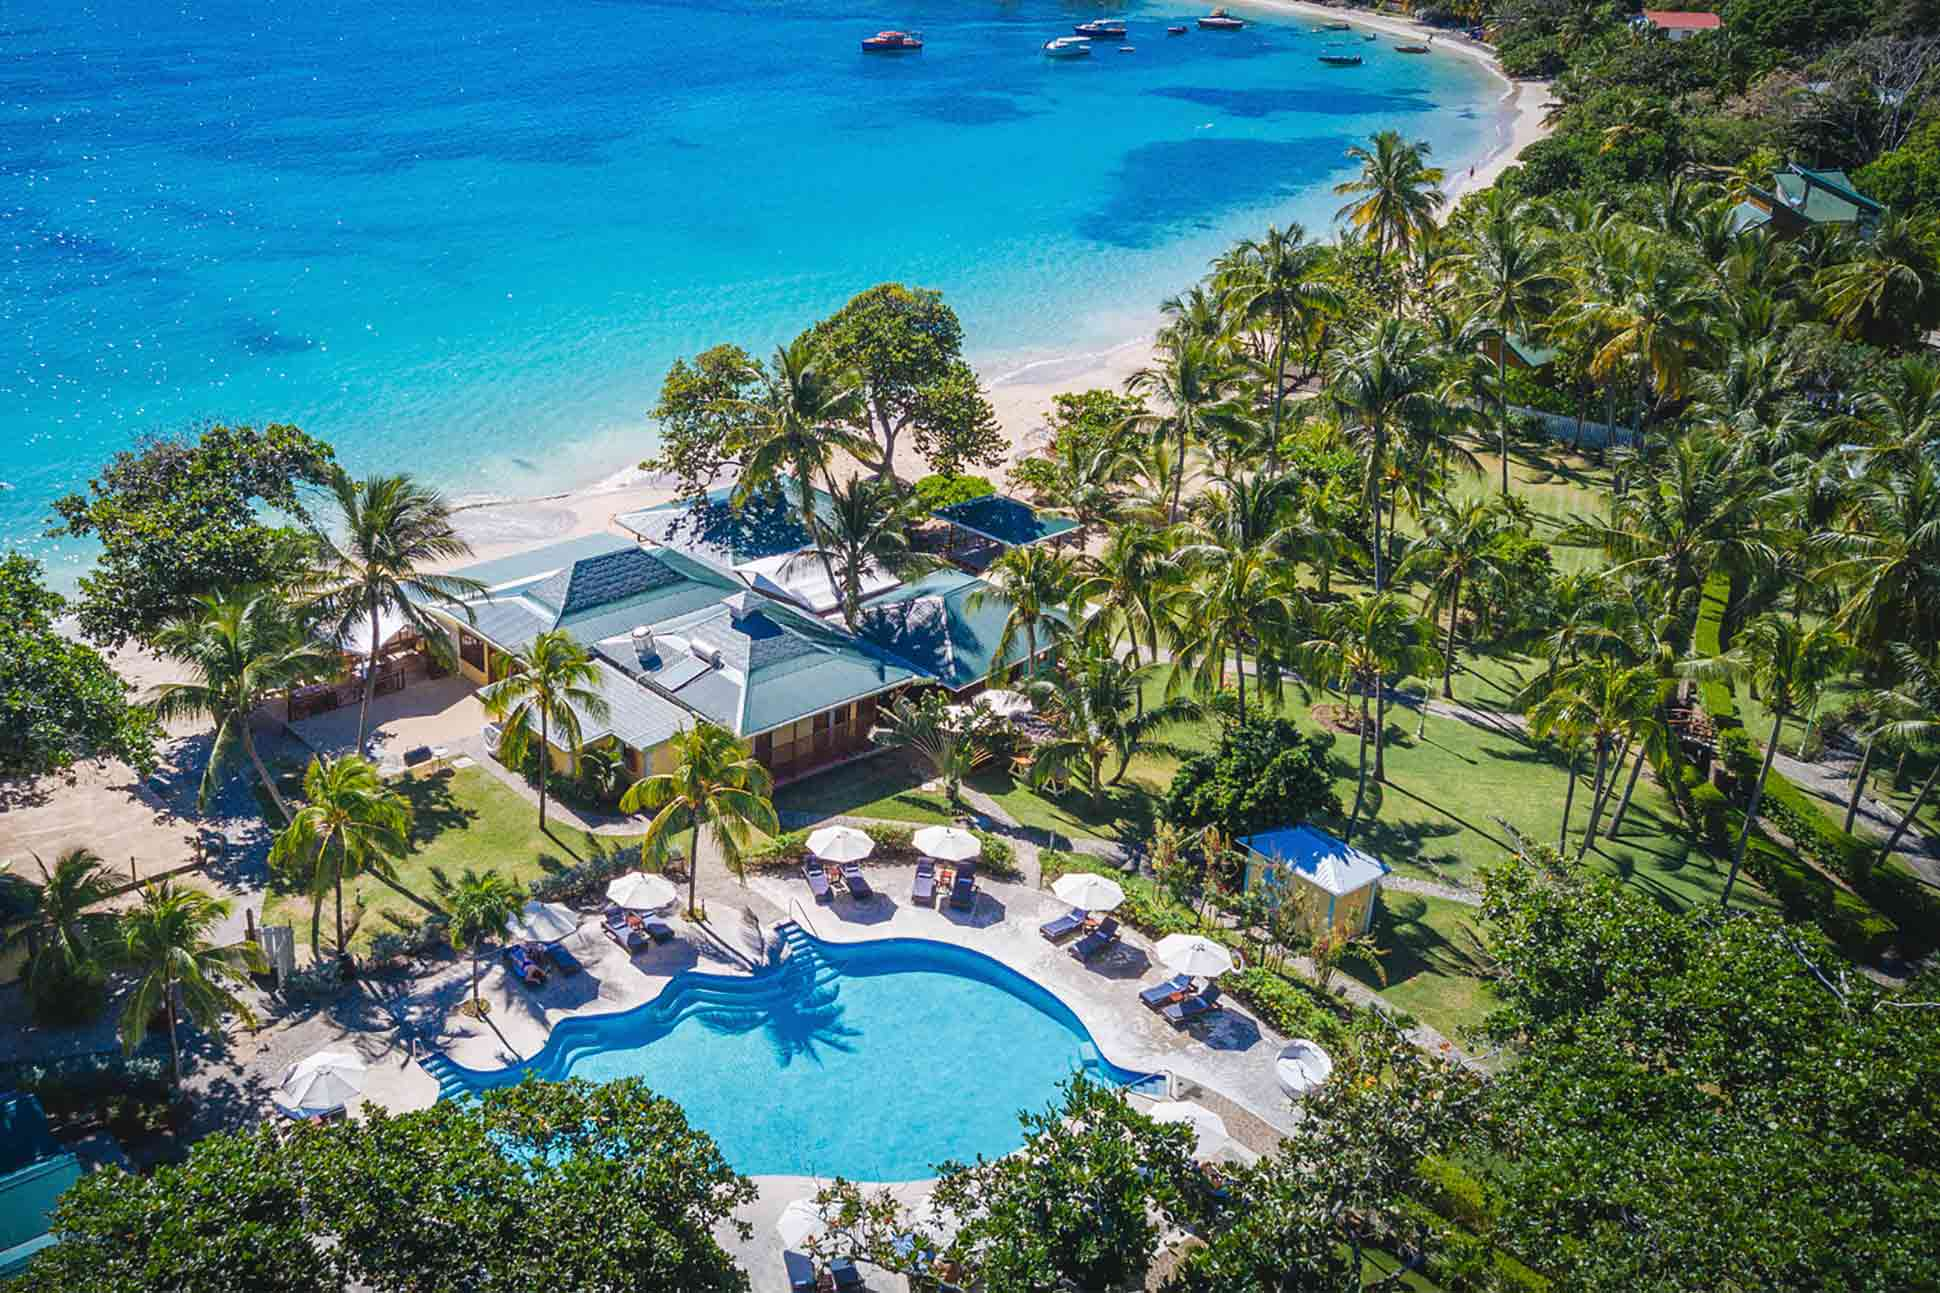 Bequia Beach Hotel <br> Belmont, Bequia, Saint Vincent and the Grenadines